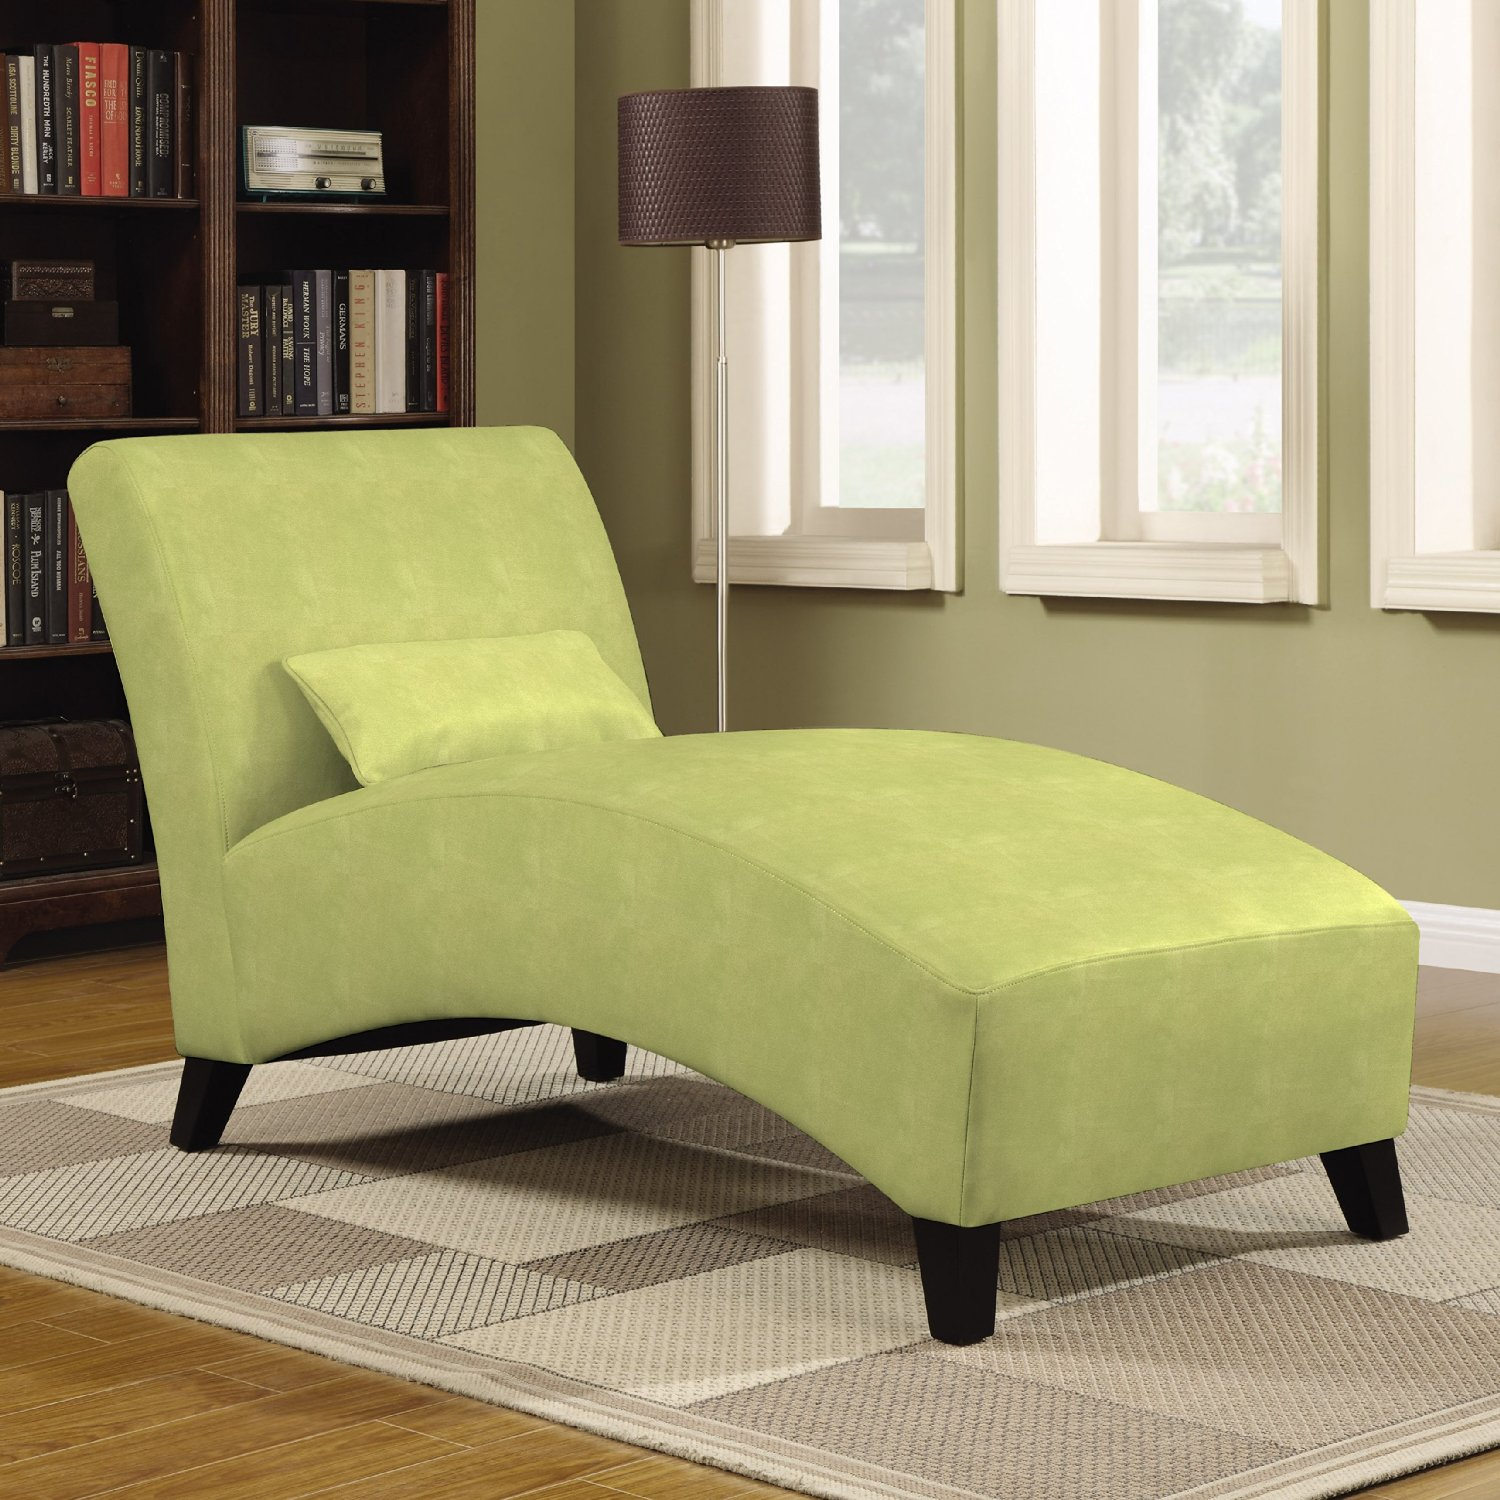 chaise chair for bedroom microfiber and ottoman upholstered lounges bedrooms